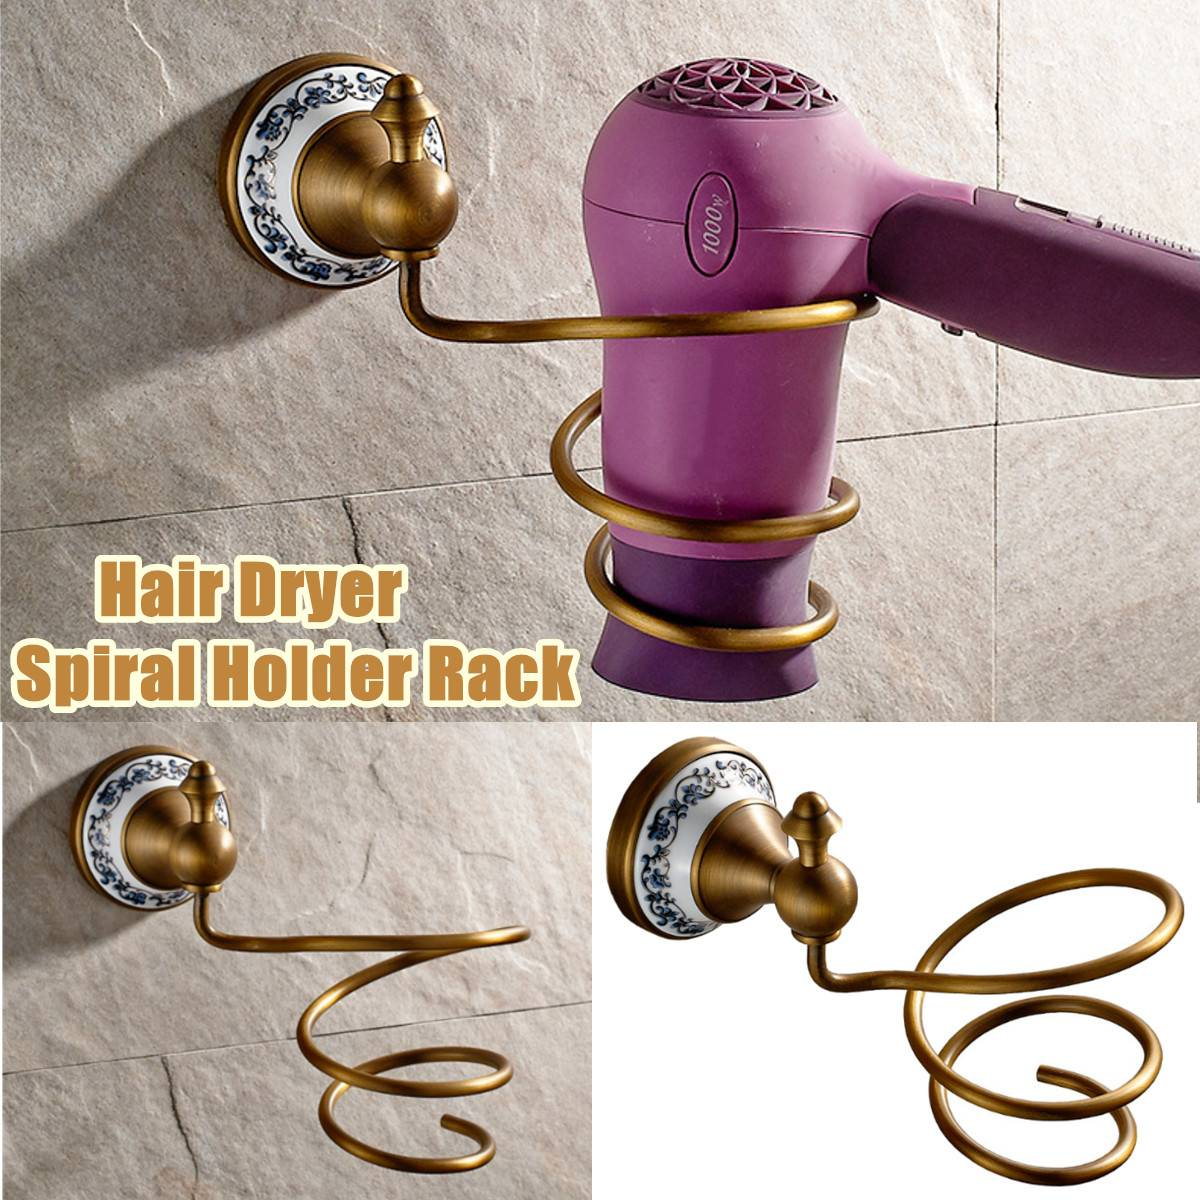 Bathroom Fixtures Motivated Luxury Gold Color Brass European Innovative Wall-mounted Hair Dryer Shelf Storage Rack Bathroom Hair Dryer Holder For Hairdryer Fragrant Aroma